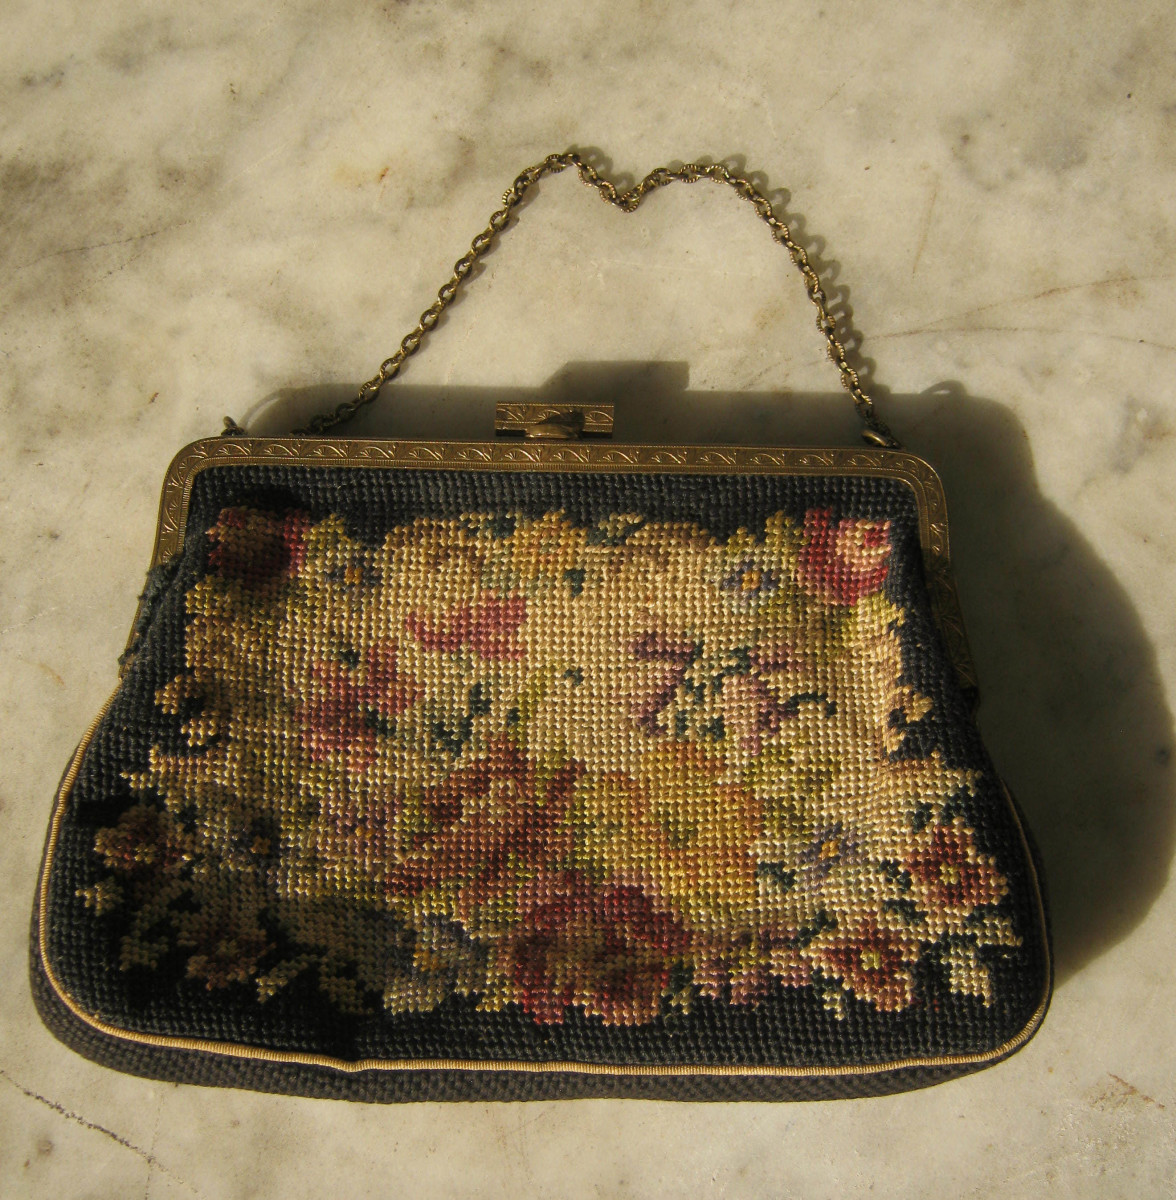 Fashion History - Purses and Handbags